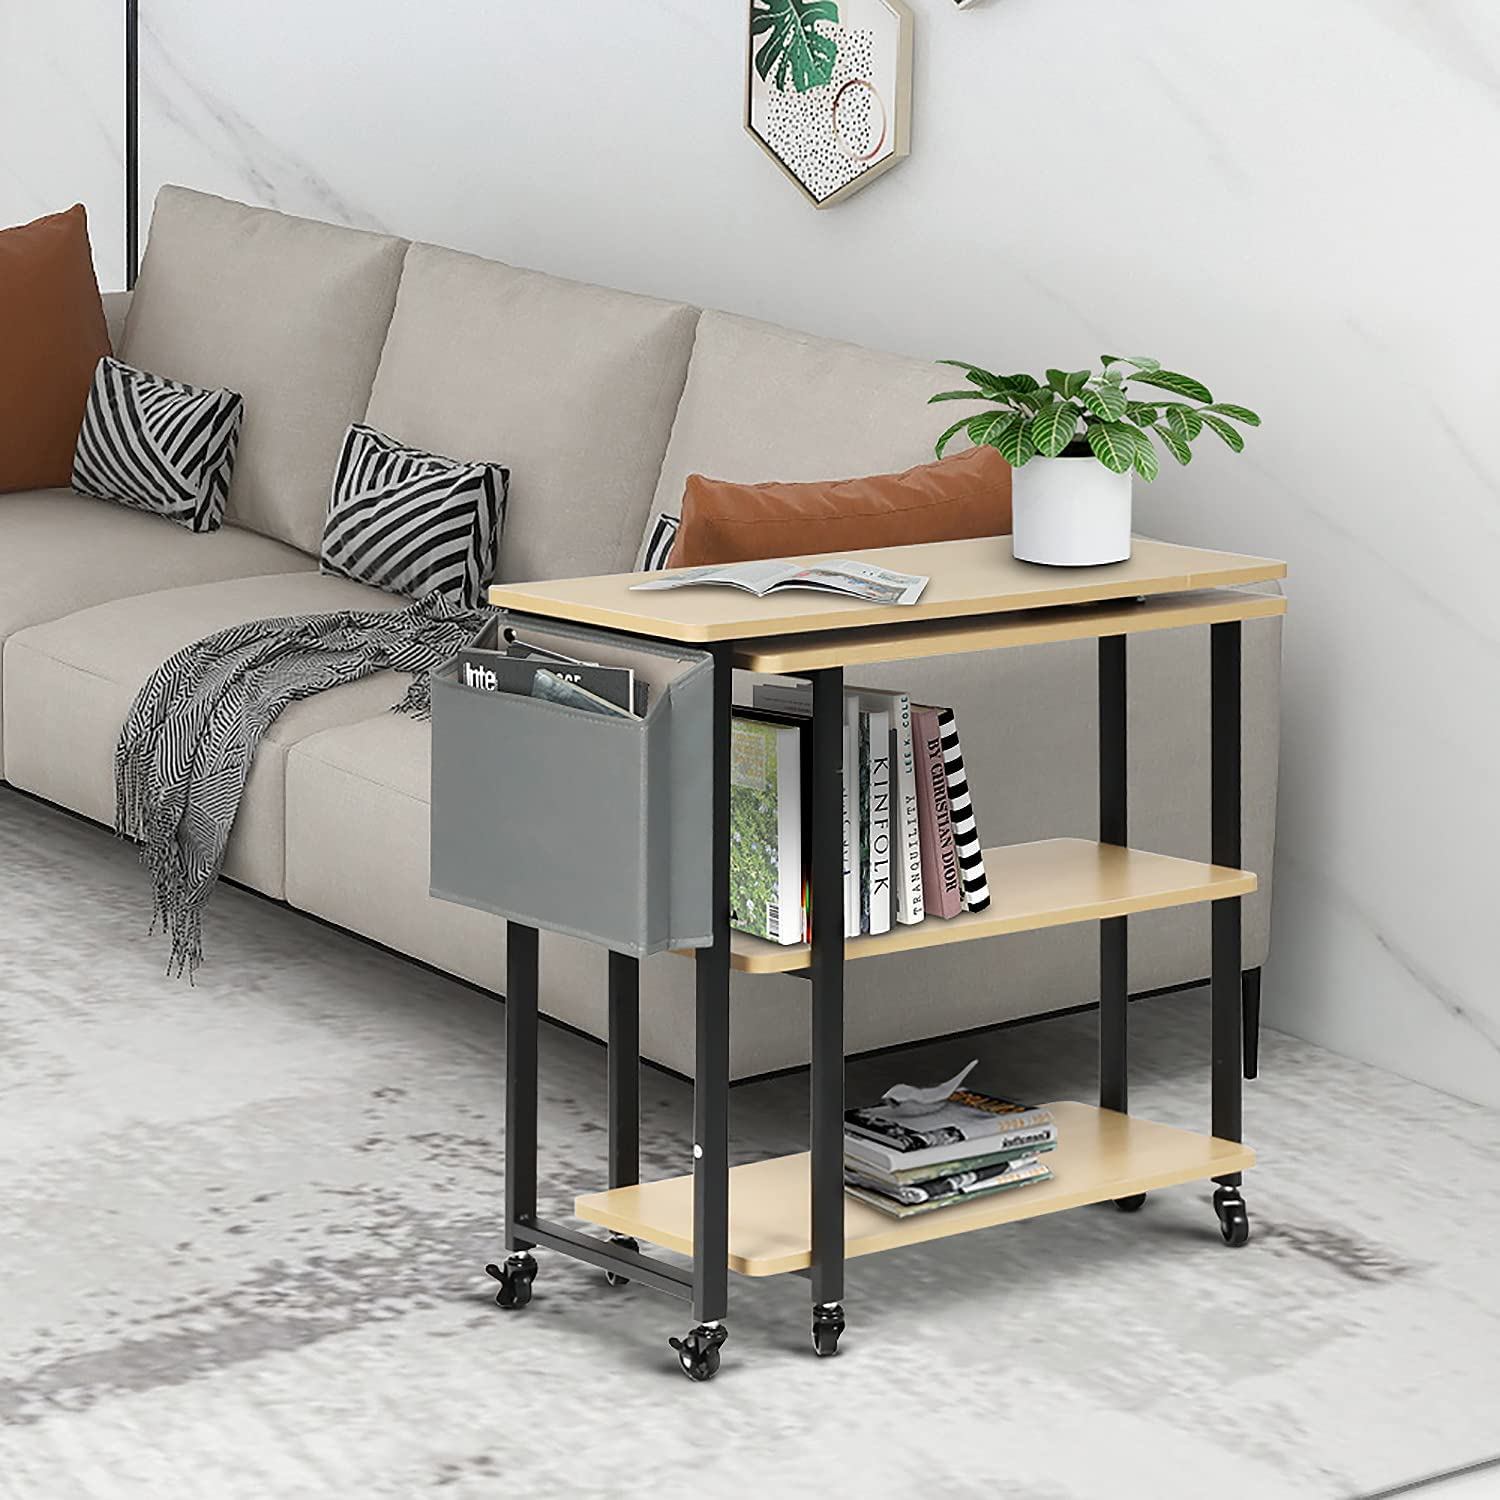 HOPUBUY Sofa SALENEW very popular Side Table 360°Free Rotating Cou price Console